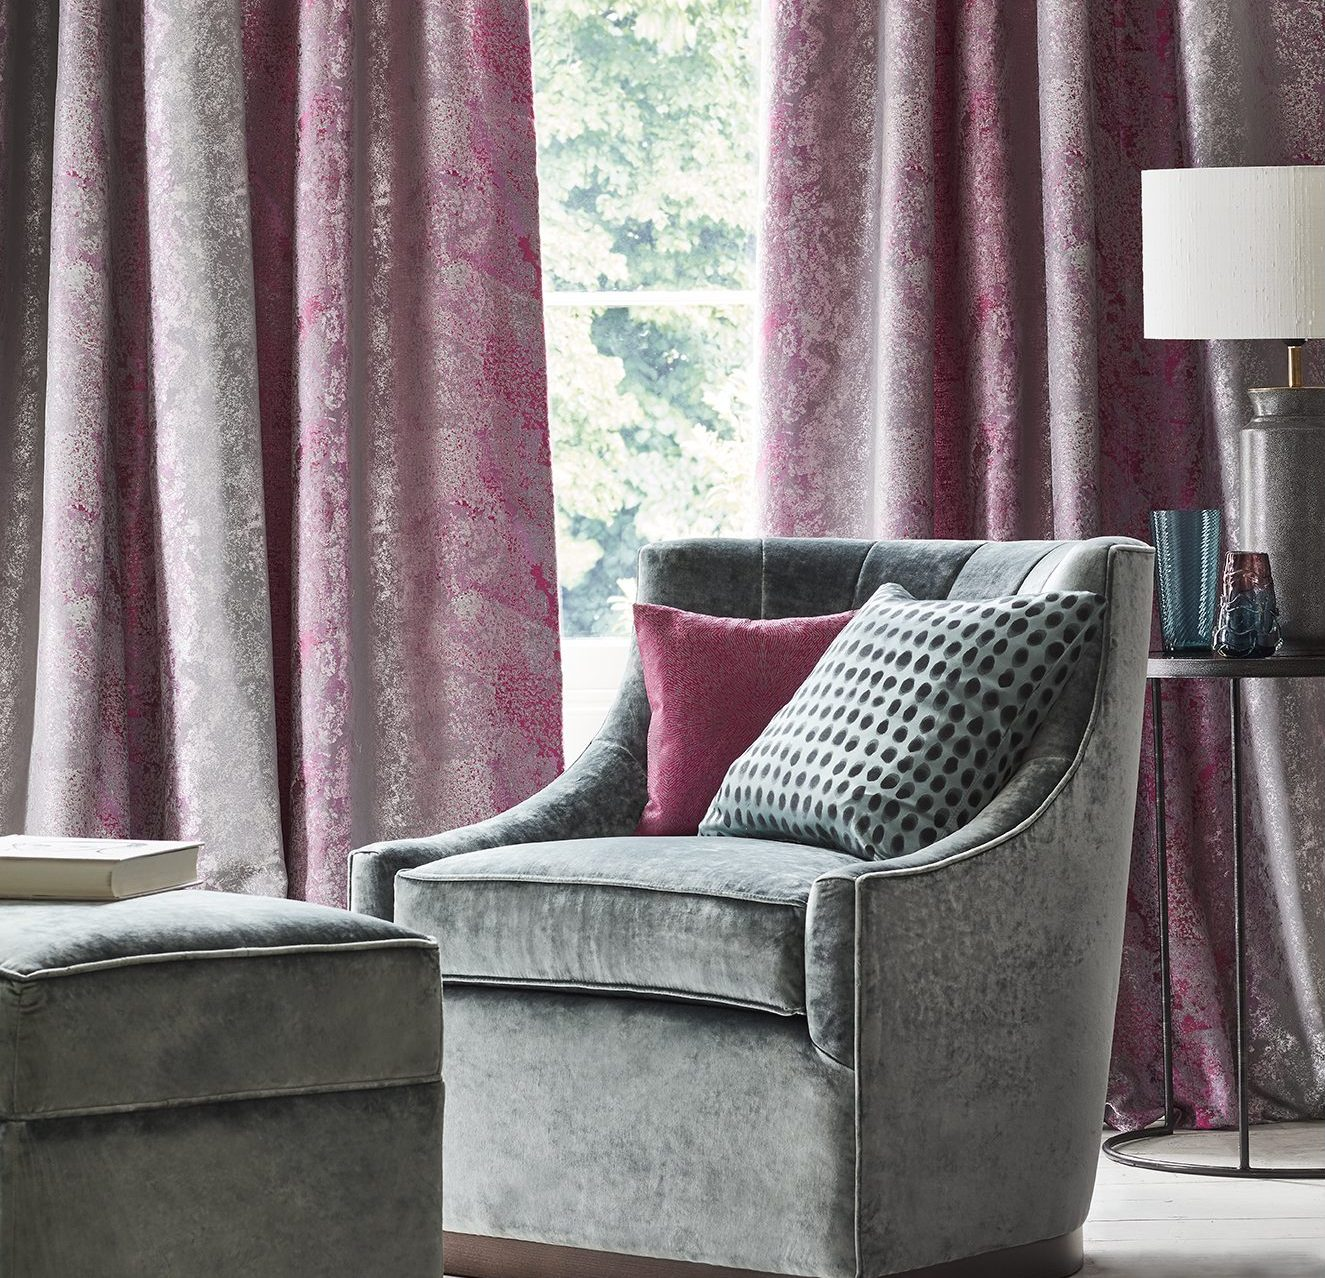 Made to Measure Curtains & Blinds in Stafford www.funkywunkydoodahs.co.uk